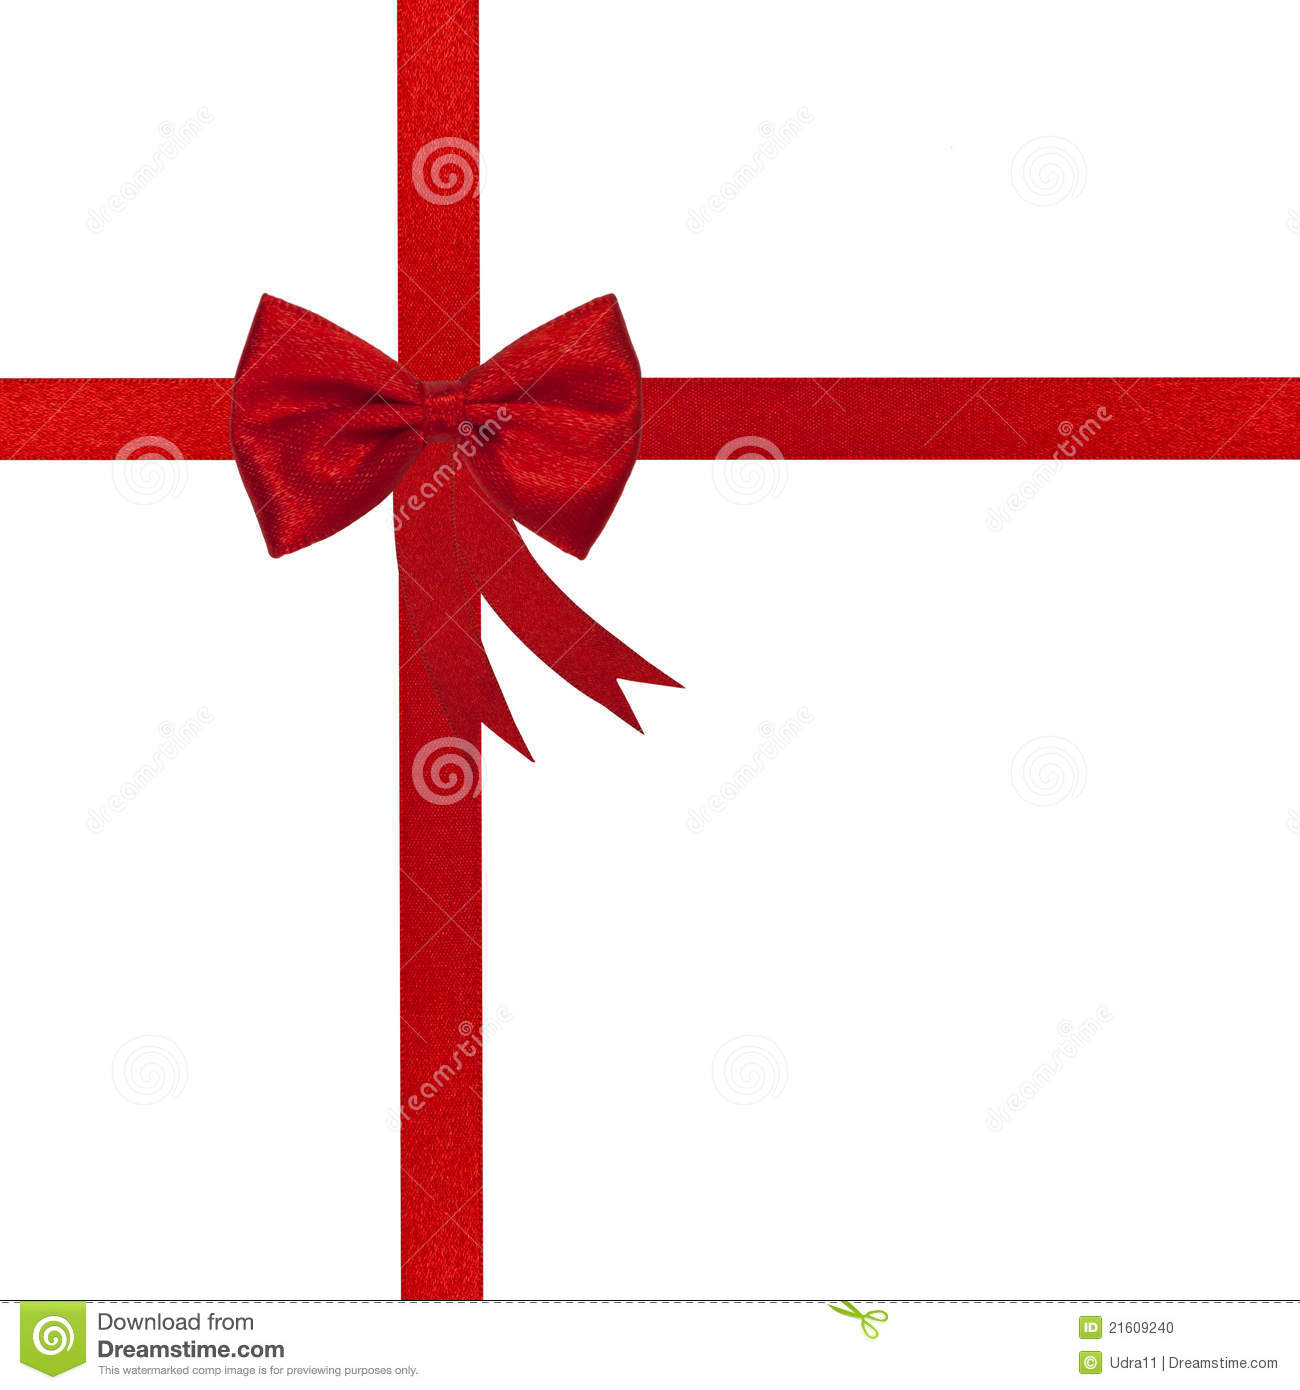 Christmas Red Ribbon And Bow Stock Photo - Image: 21609240